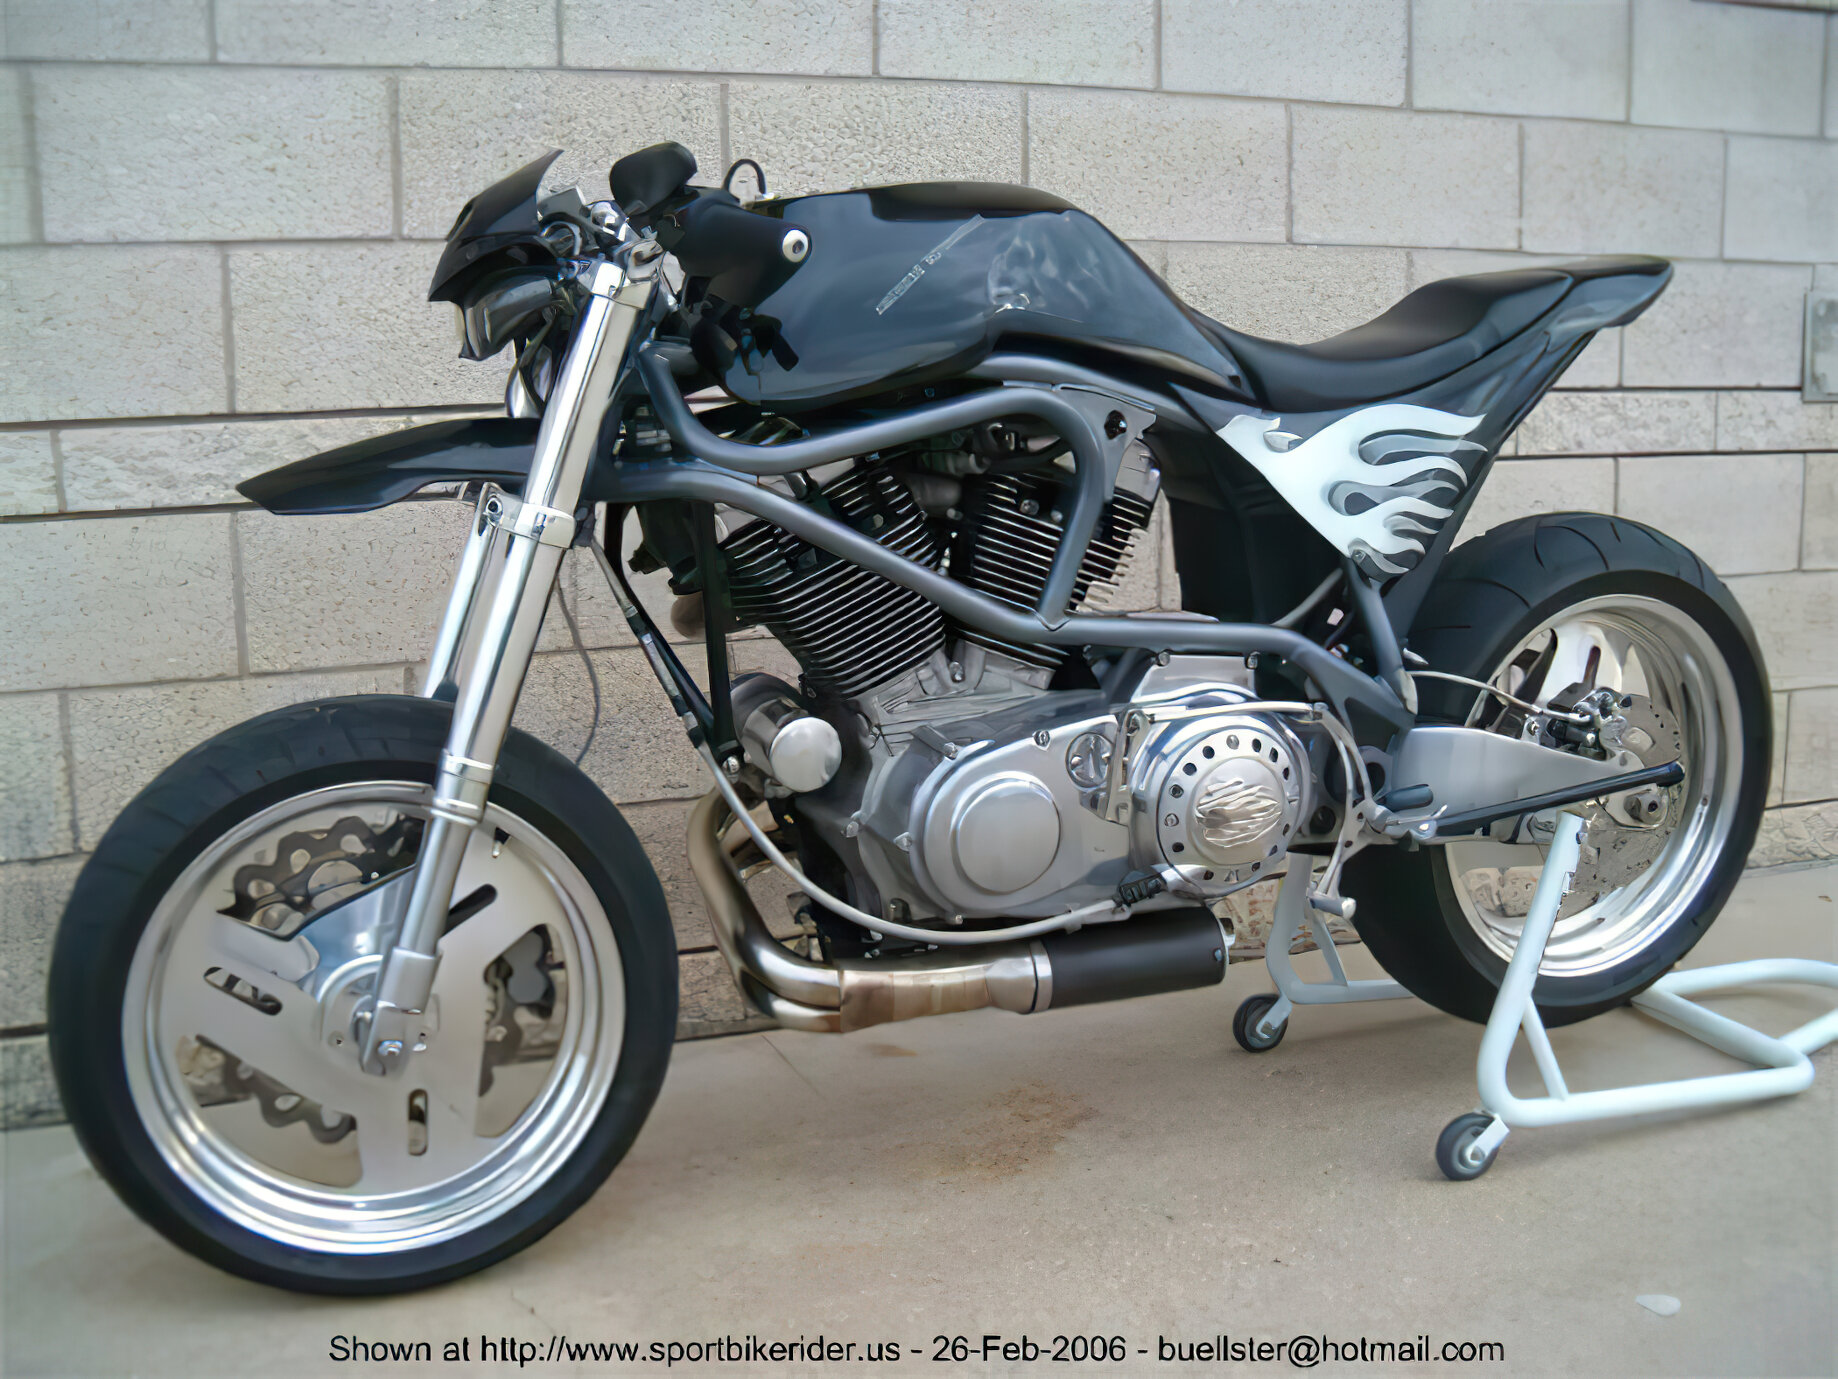 Buell S1/S2/S3 - ID: 97204